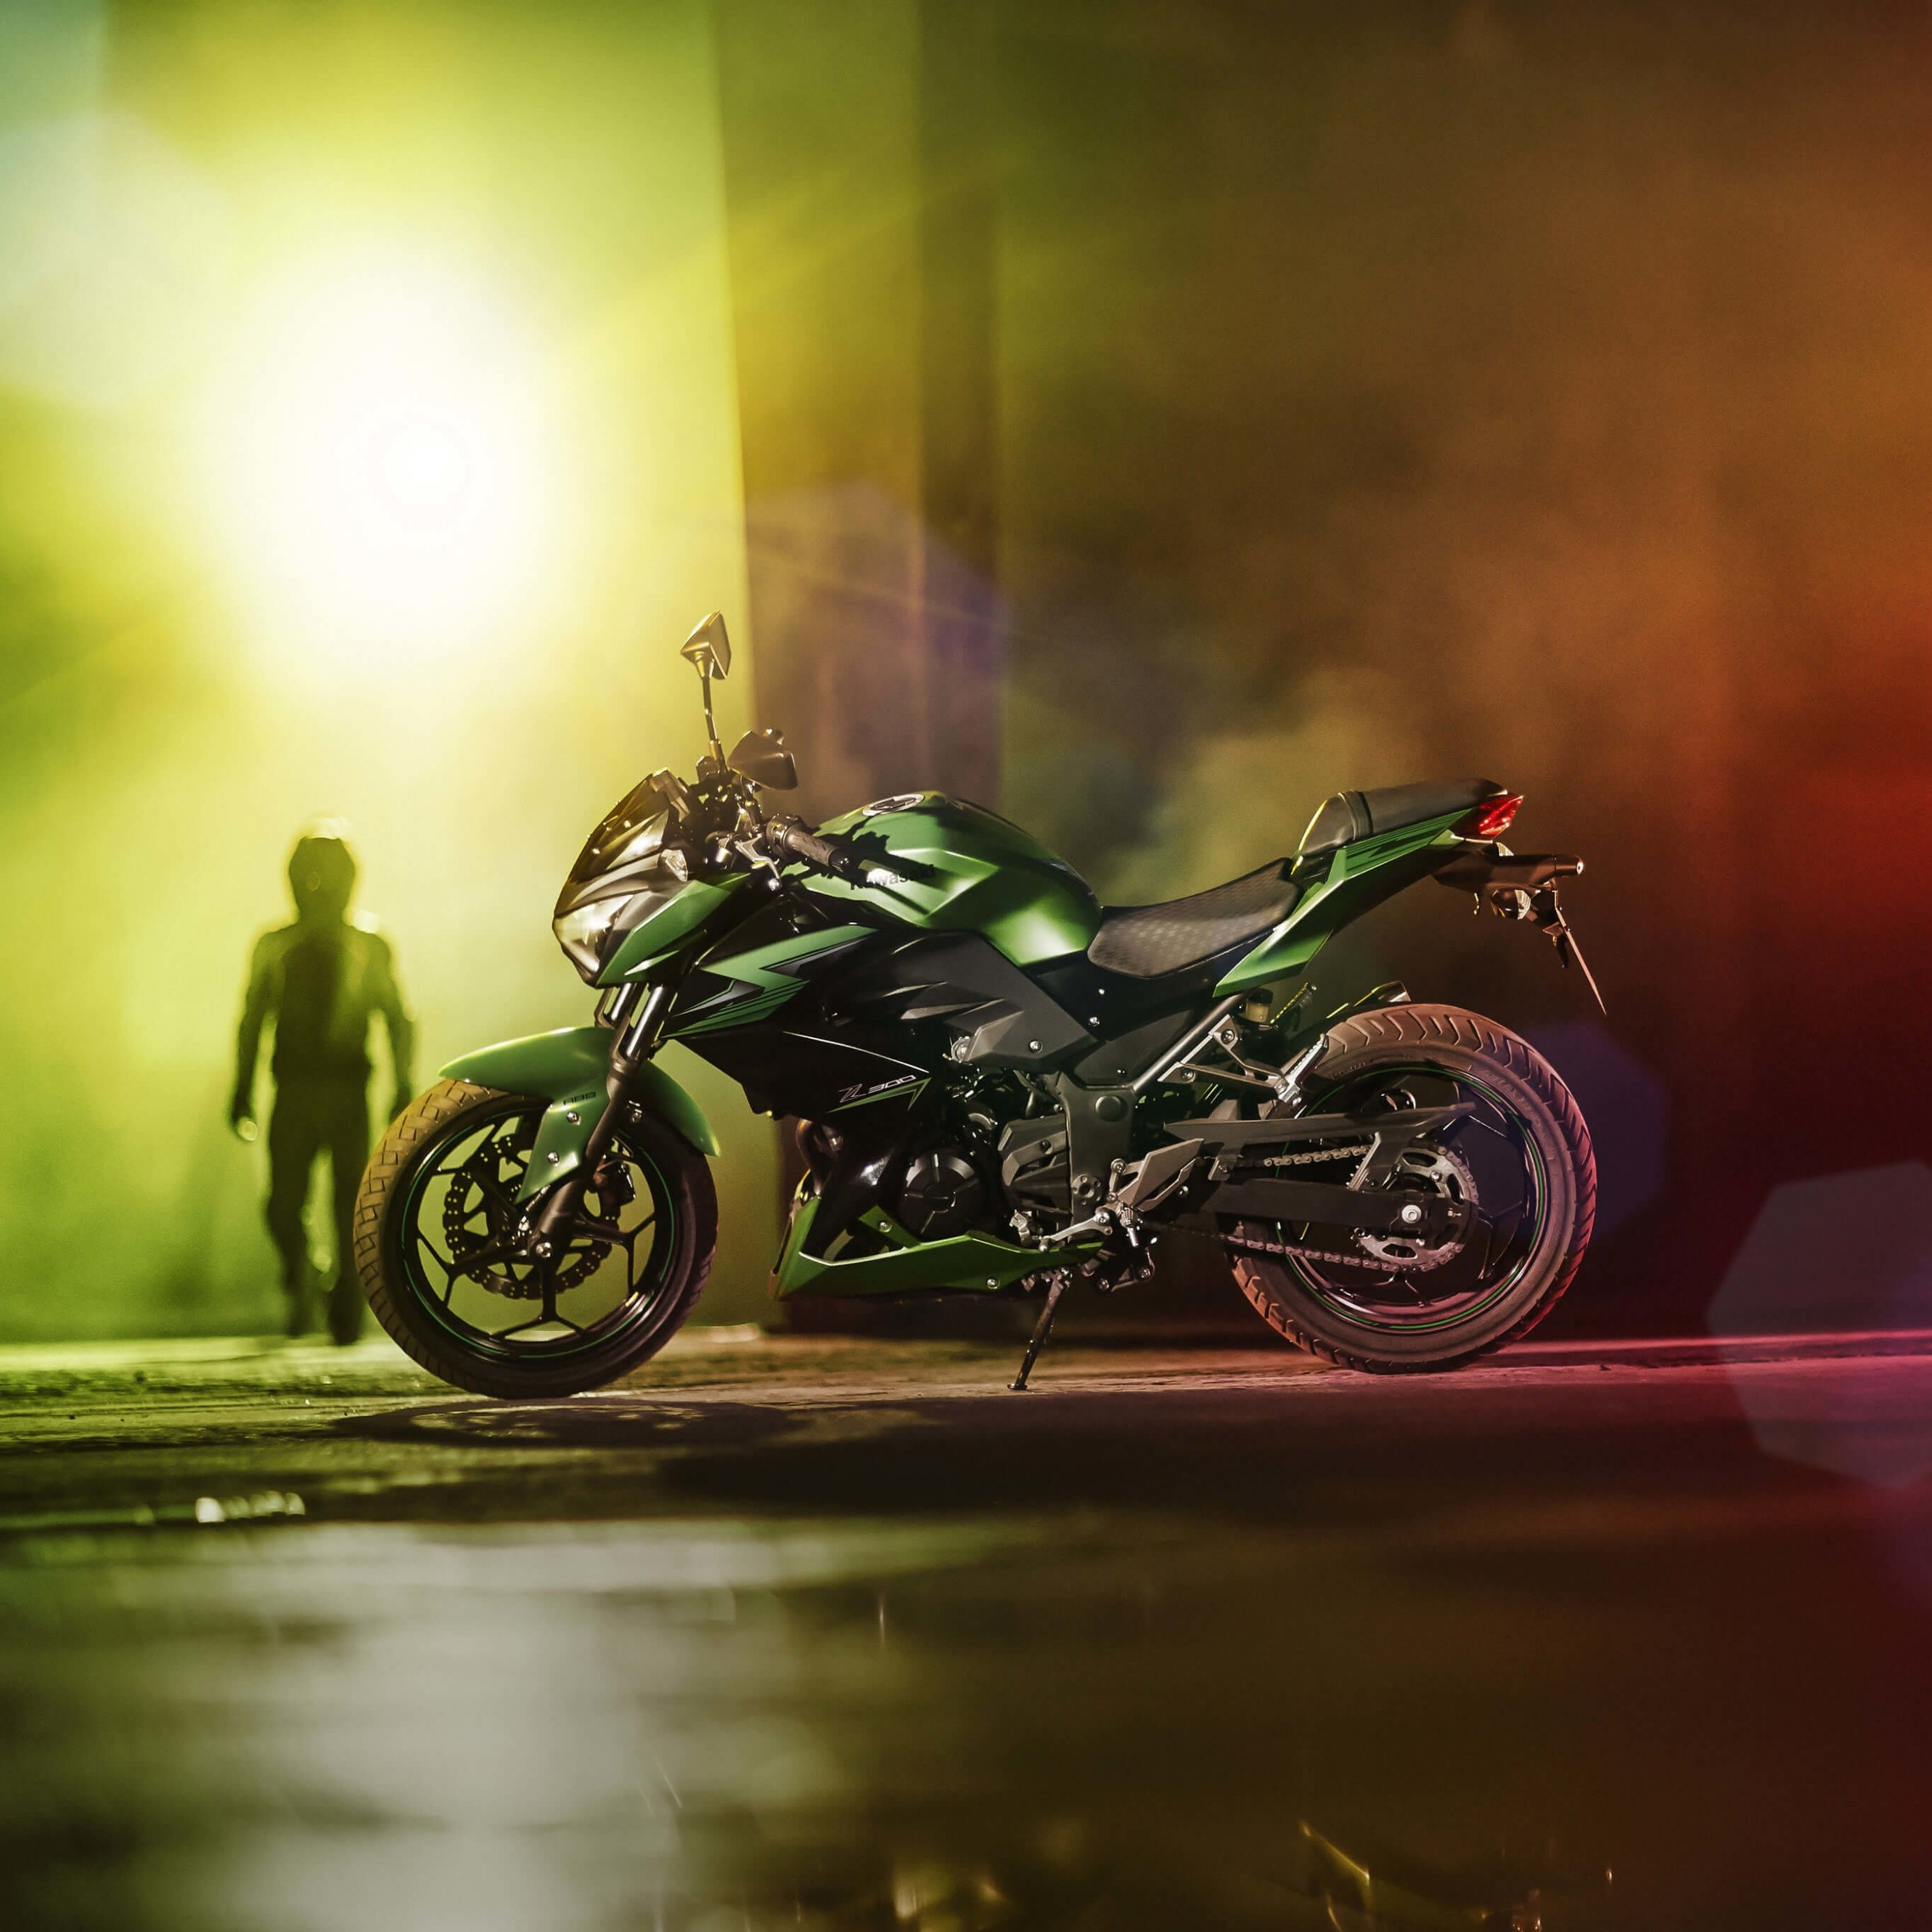 Kawasaki Z300 Wallpaper for Apple iPhone 6 Plus